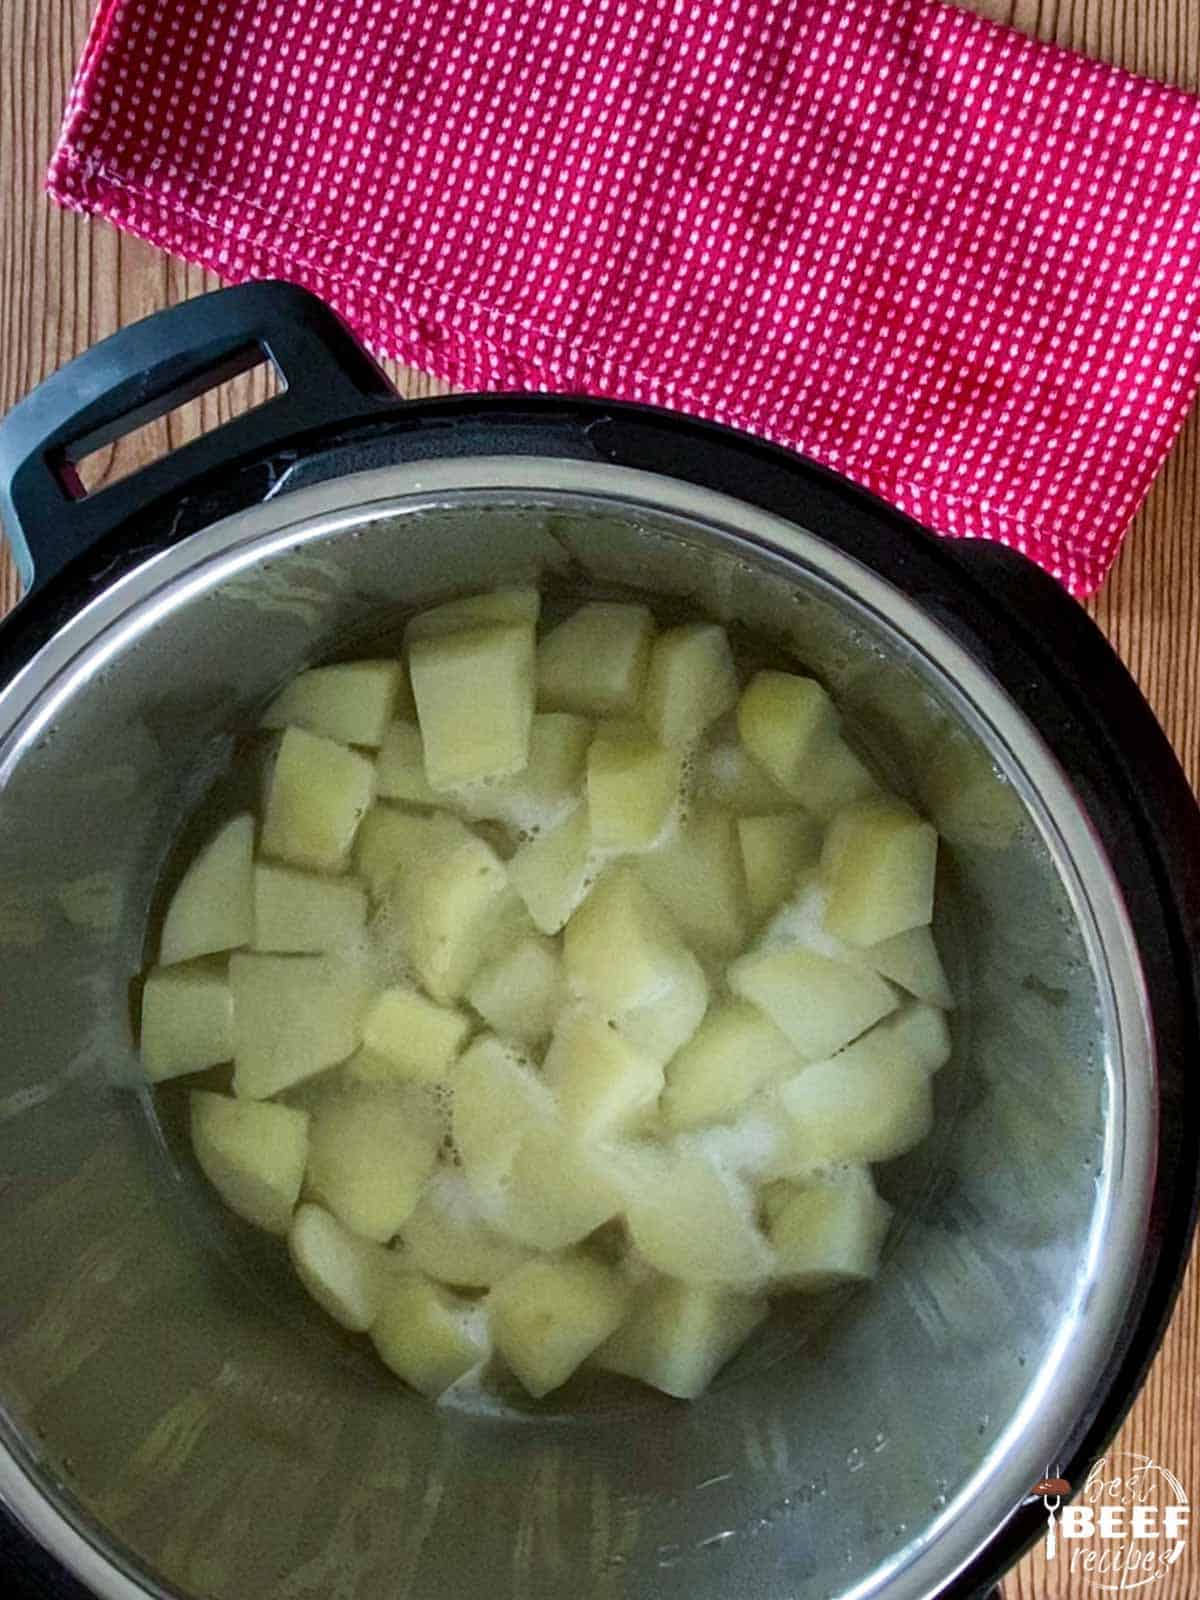 Chopped russet potatoes in the instant pot